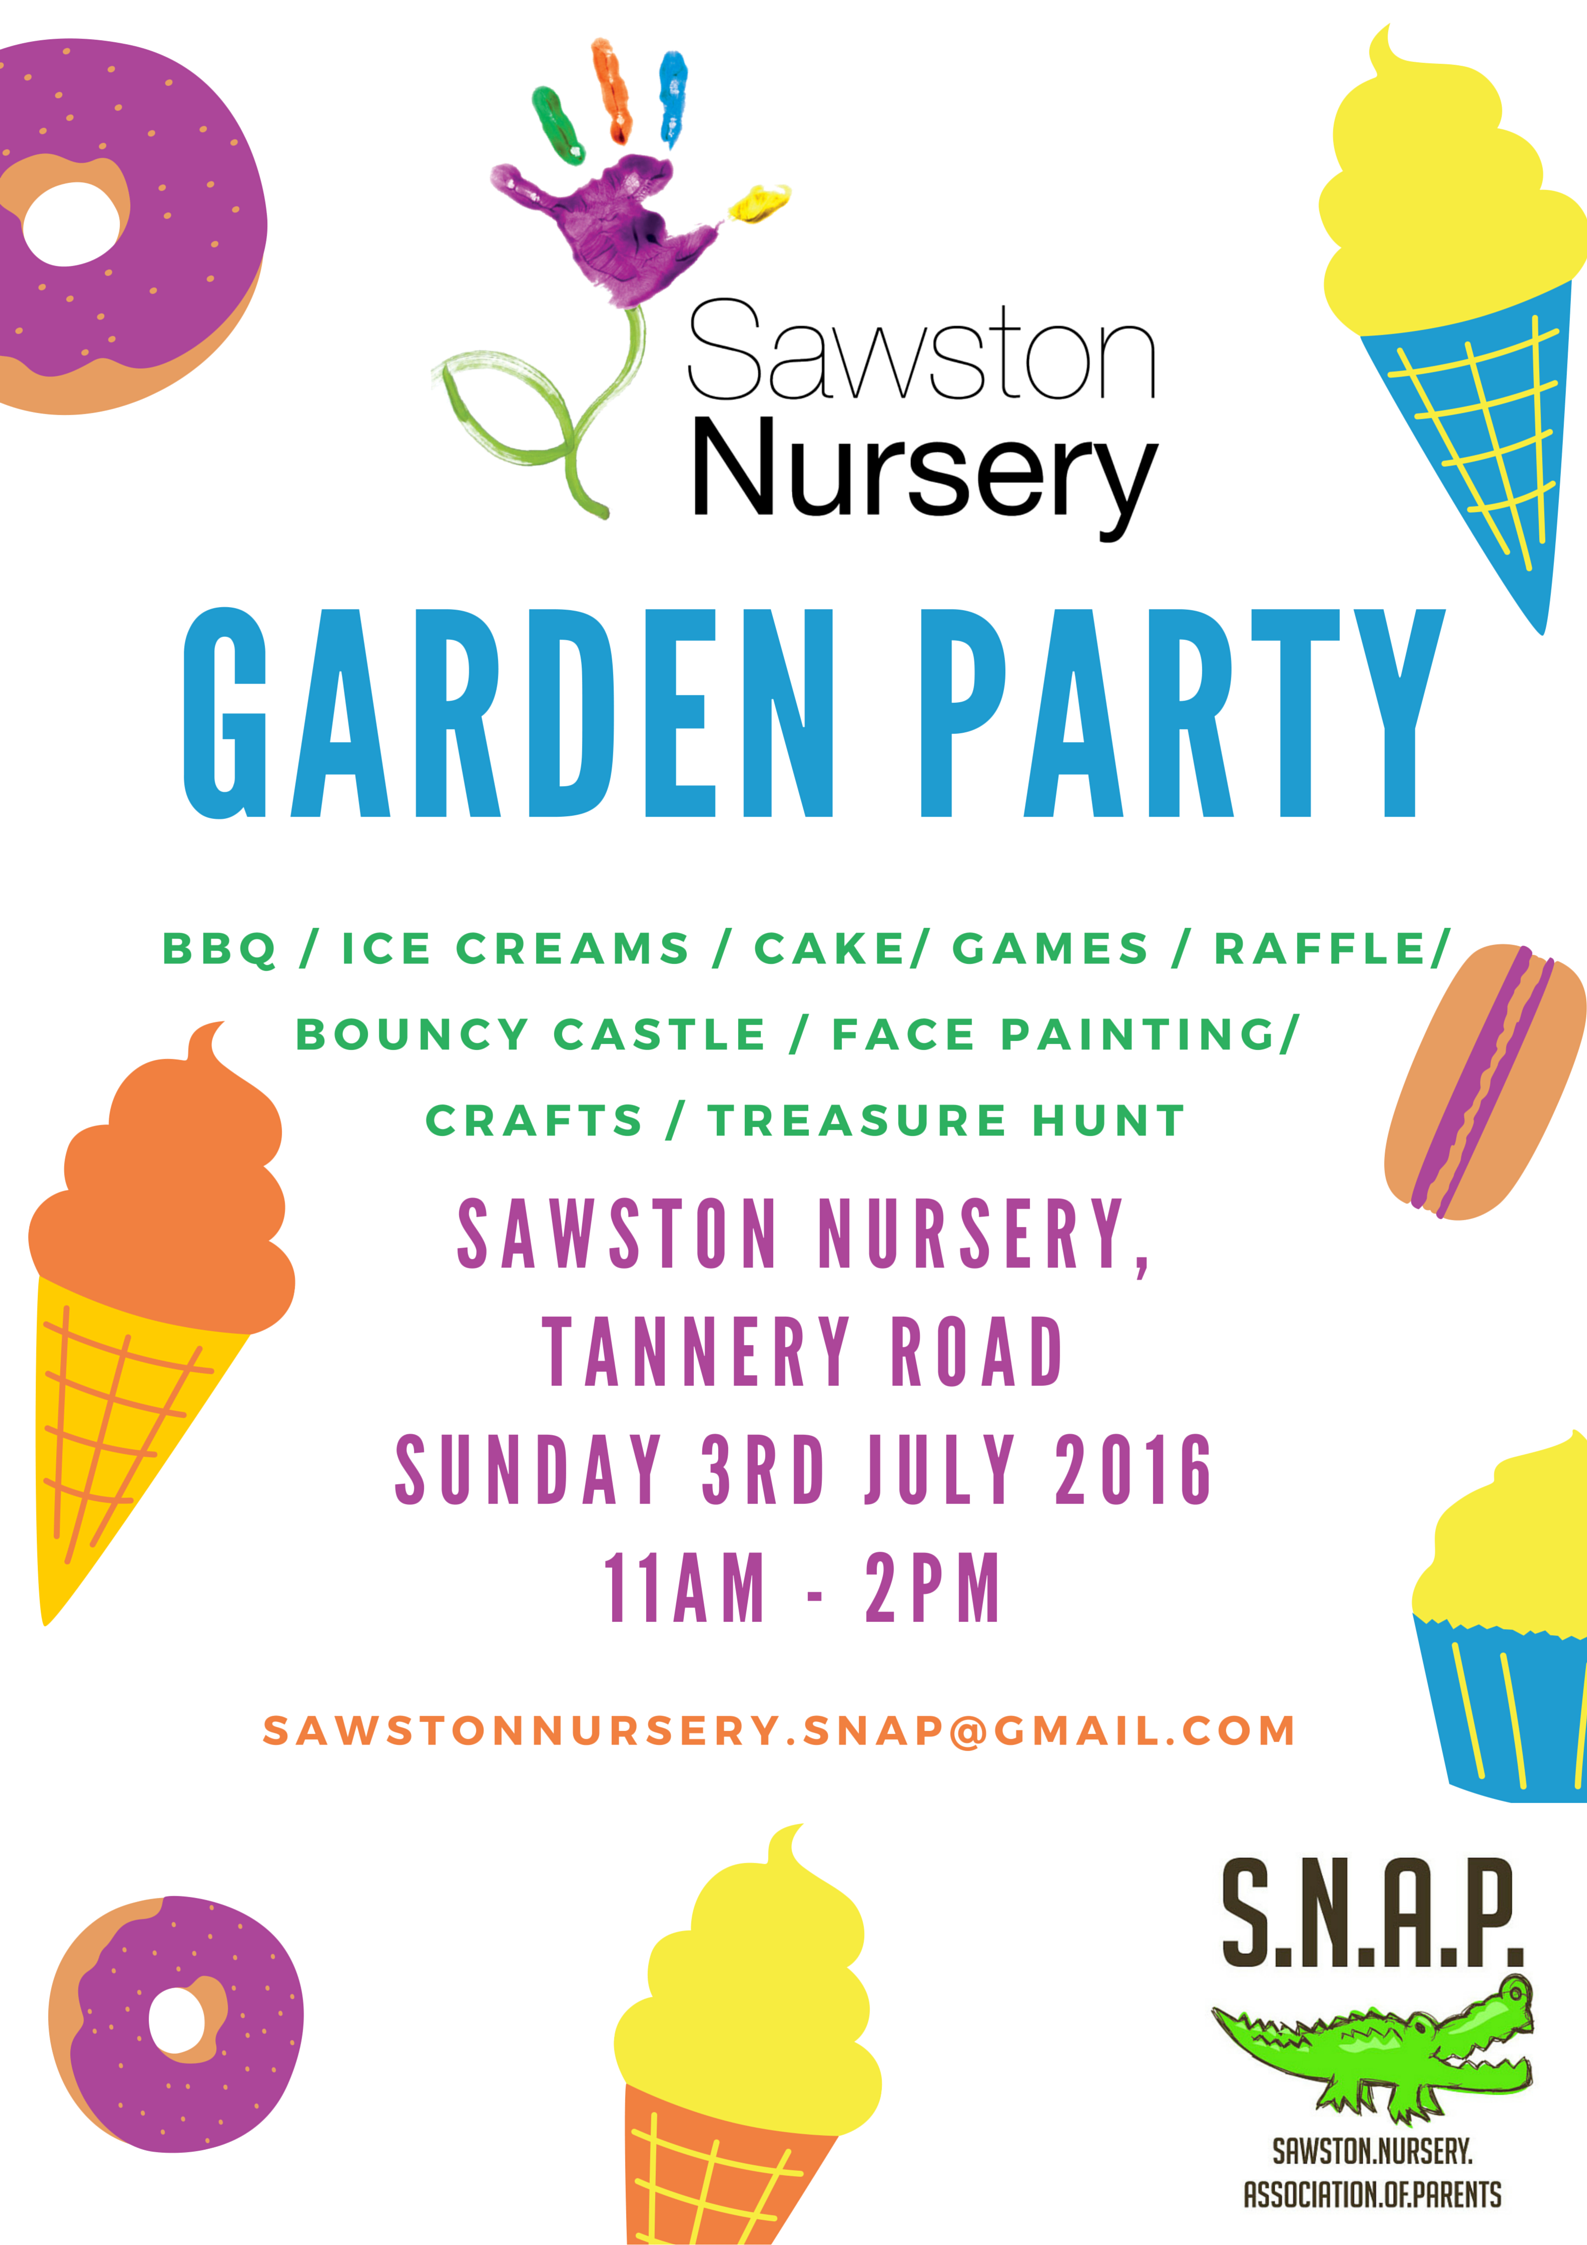 Sawston nursery garden party 3rd July 2016